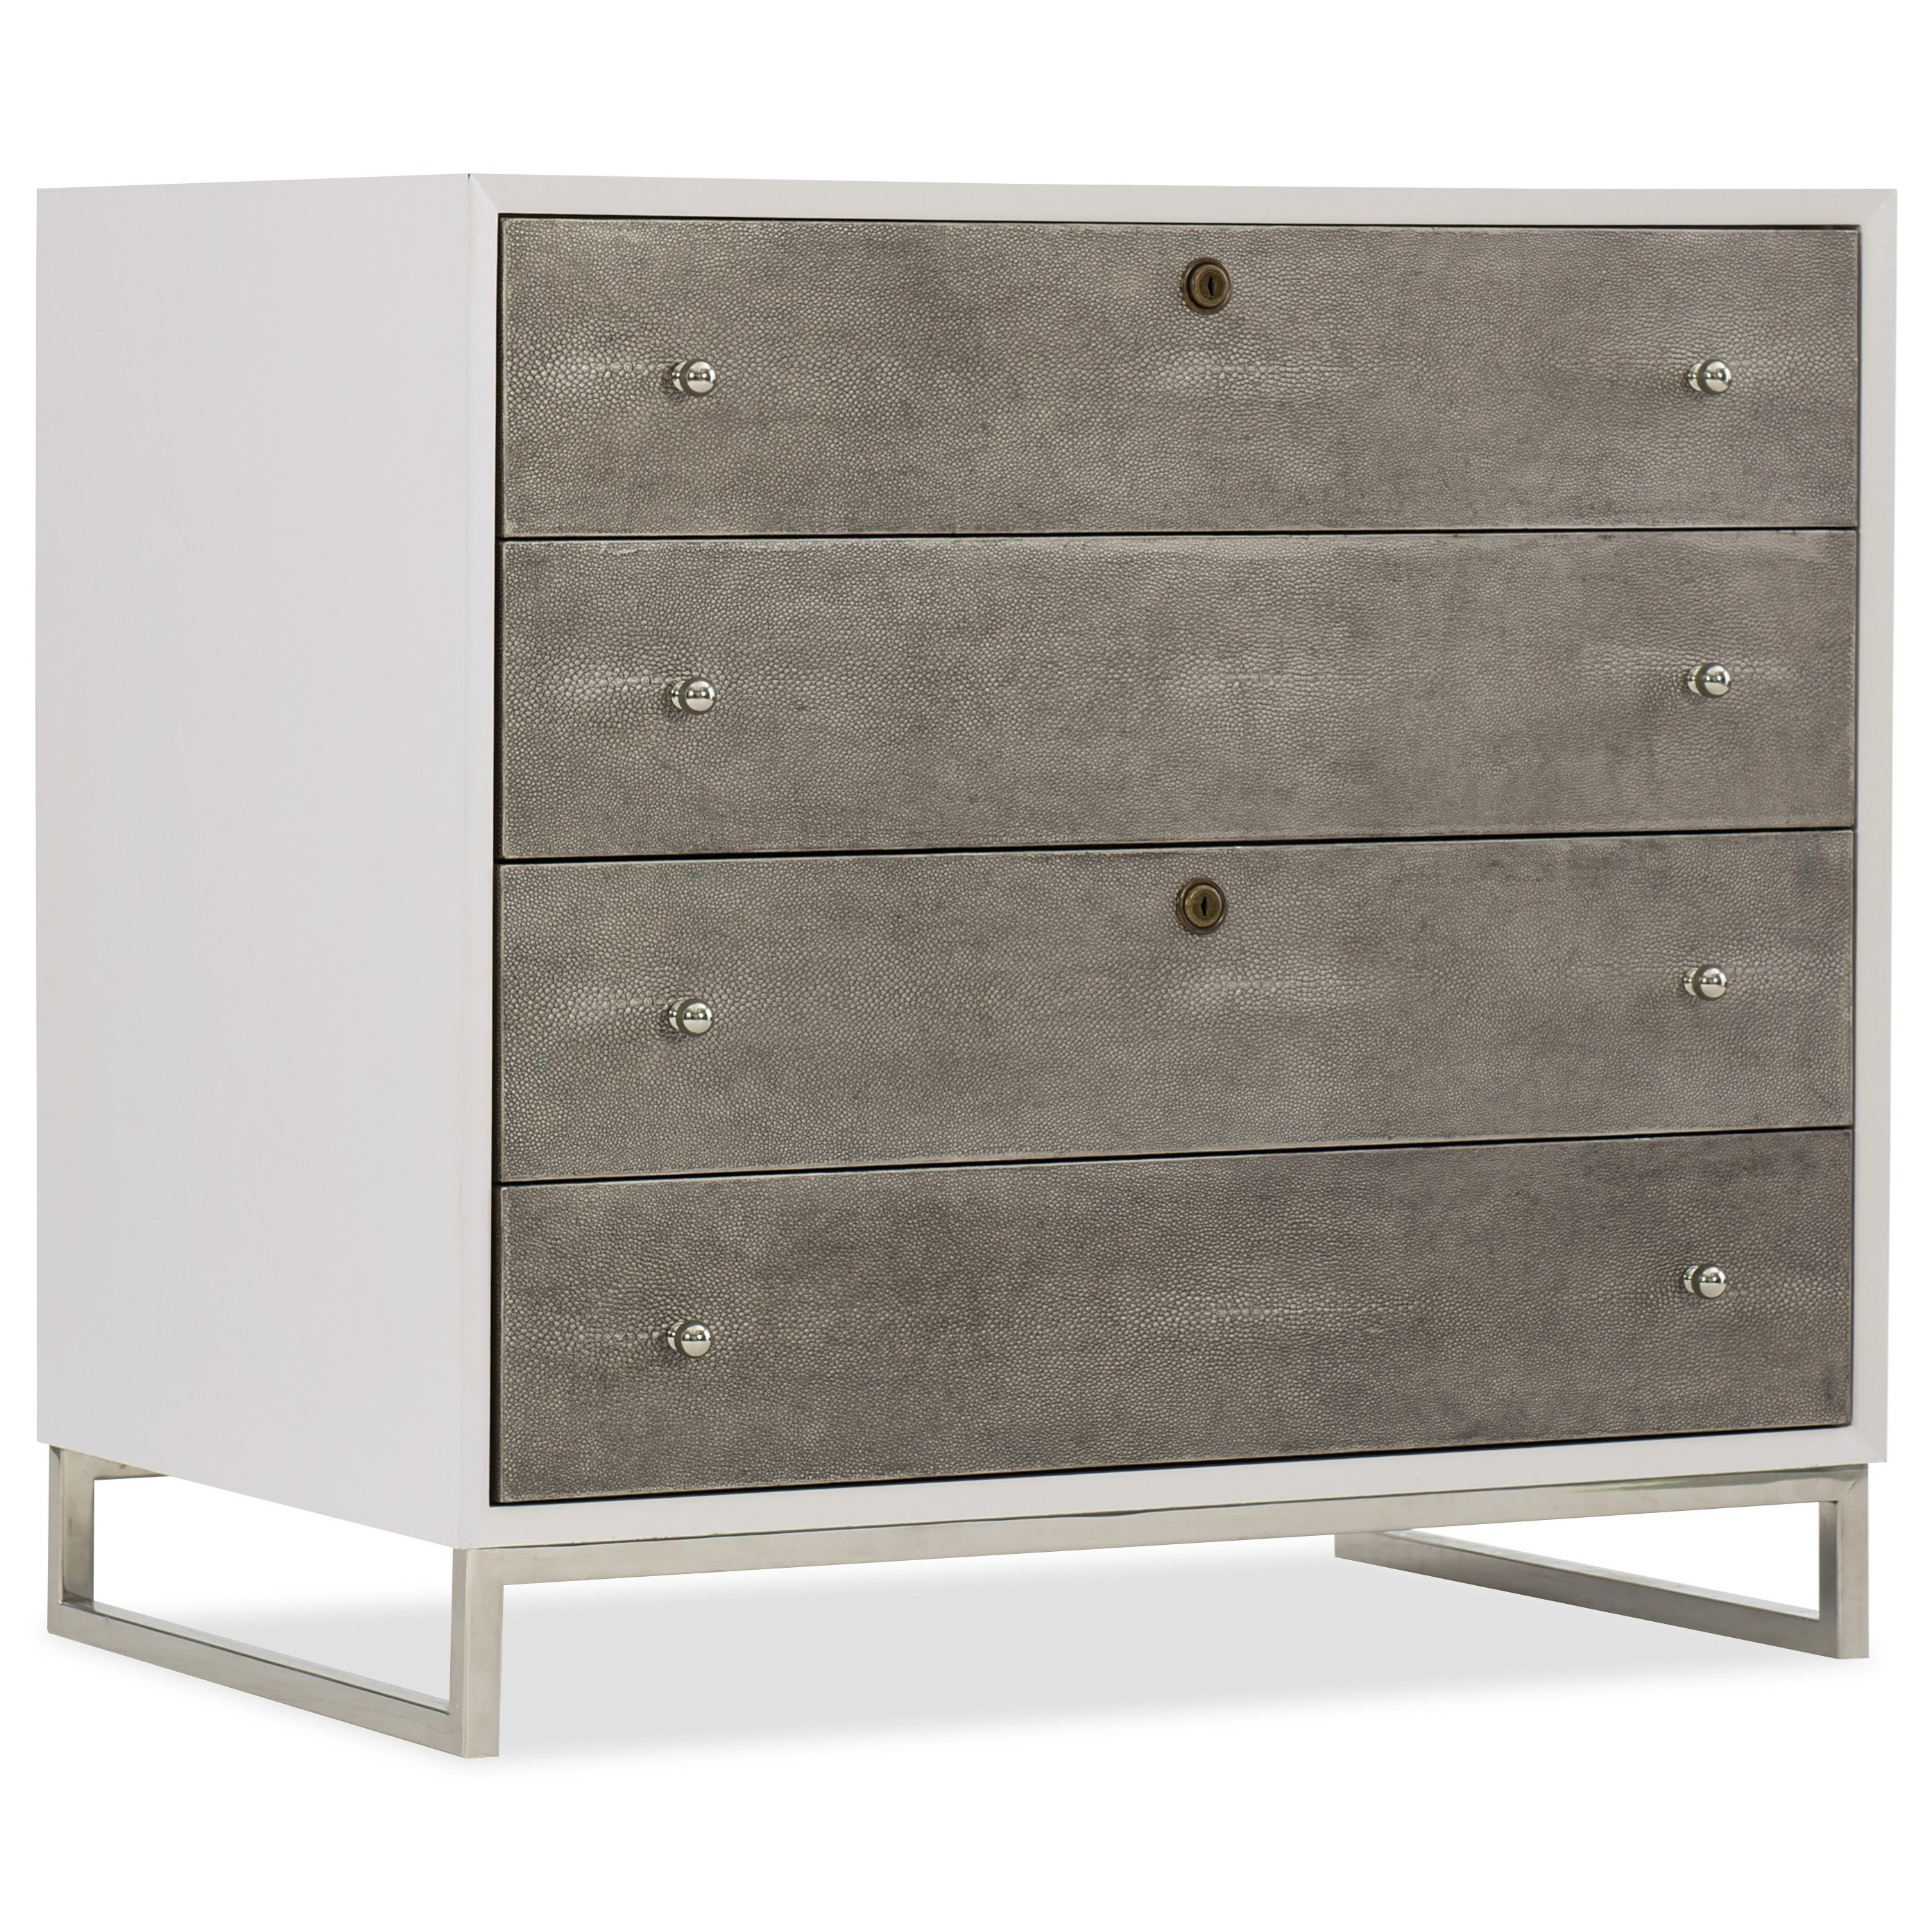 5622-10 Contemporary Lateral File by Hooker Furniture at Fisher Home Furnishings